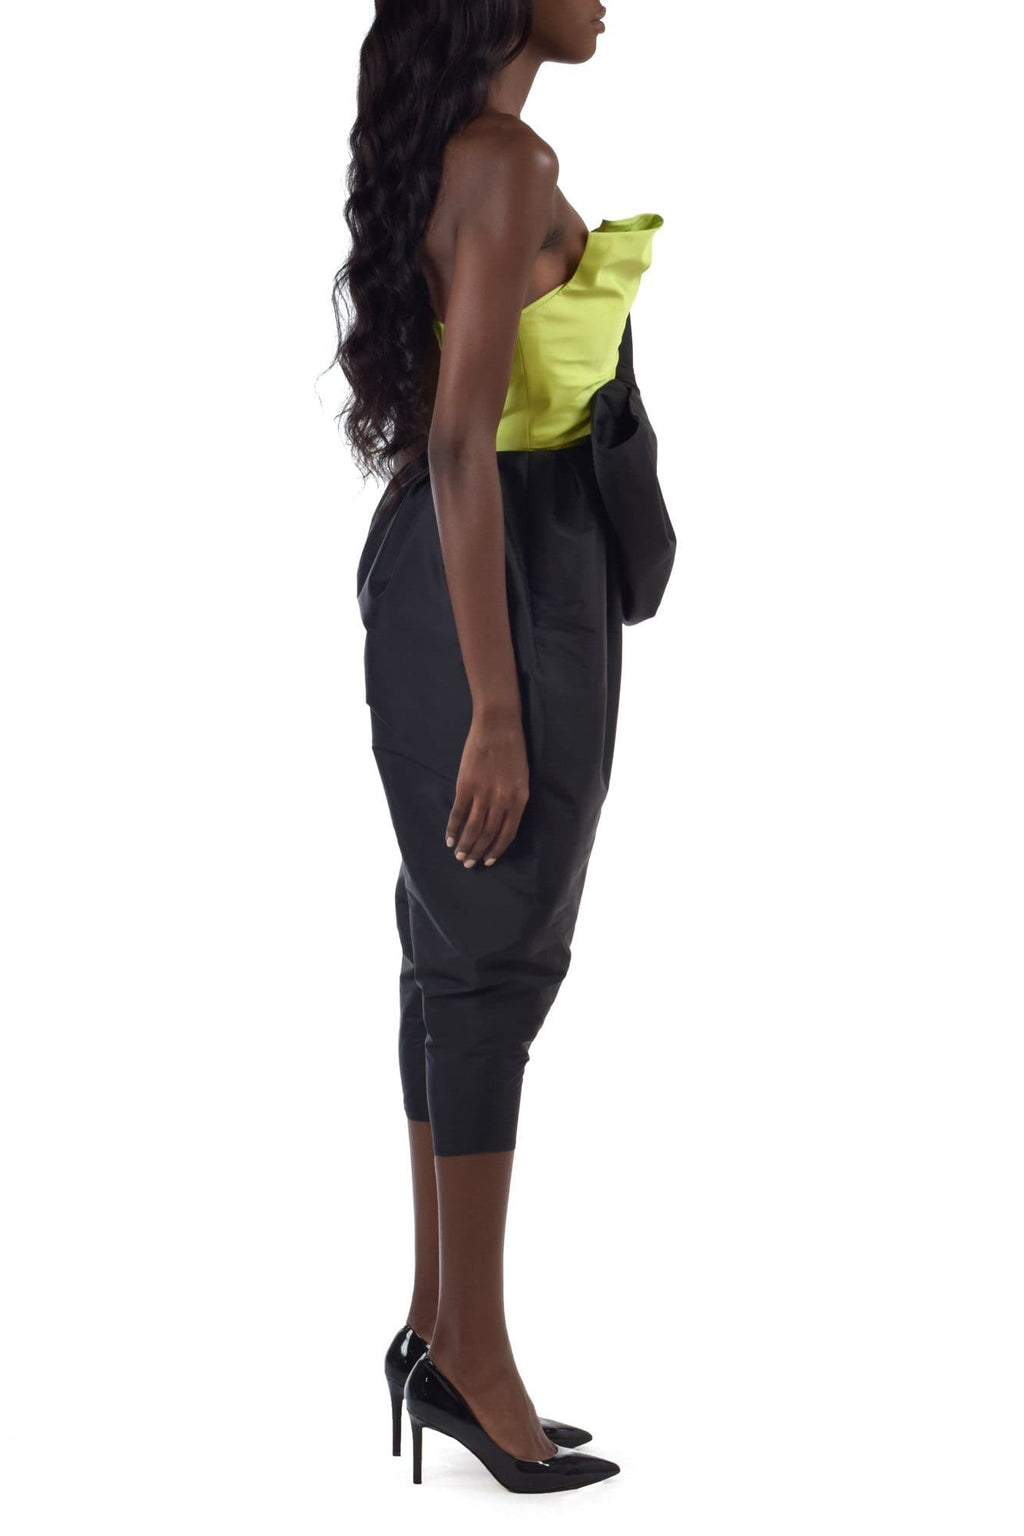 Slime Green & Deep Storm Black Jumpsuit With Oversized Bow - BYTRIBUTE